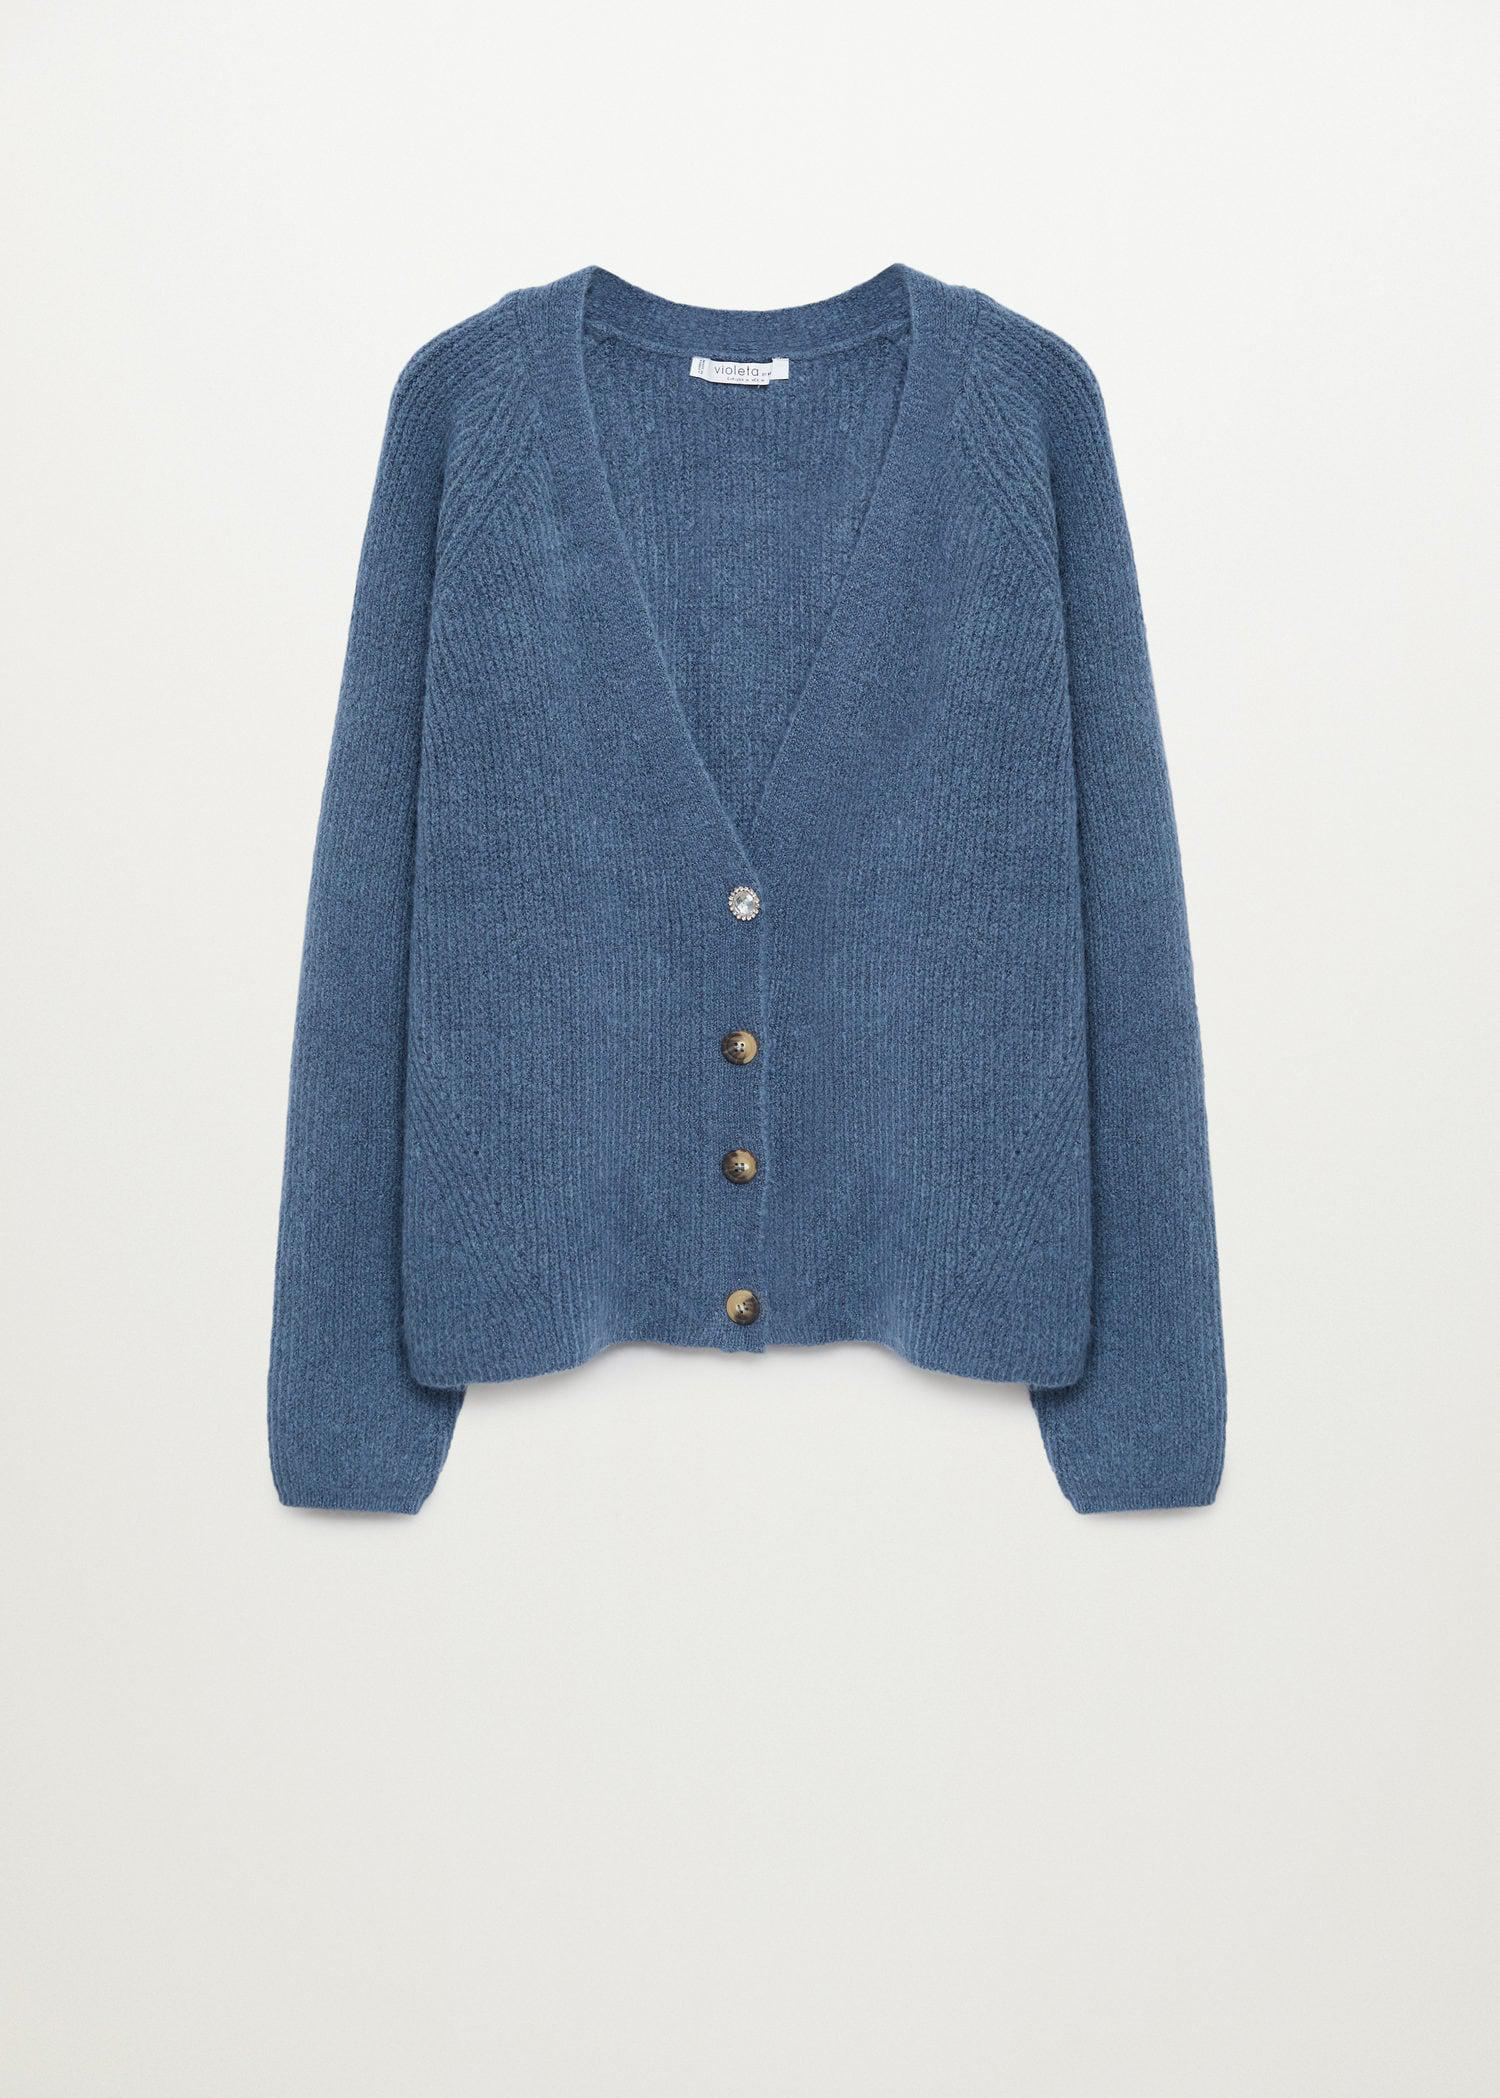 Knitted cardigan with jewel button 6